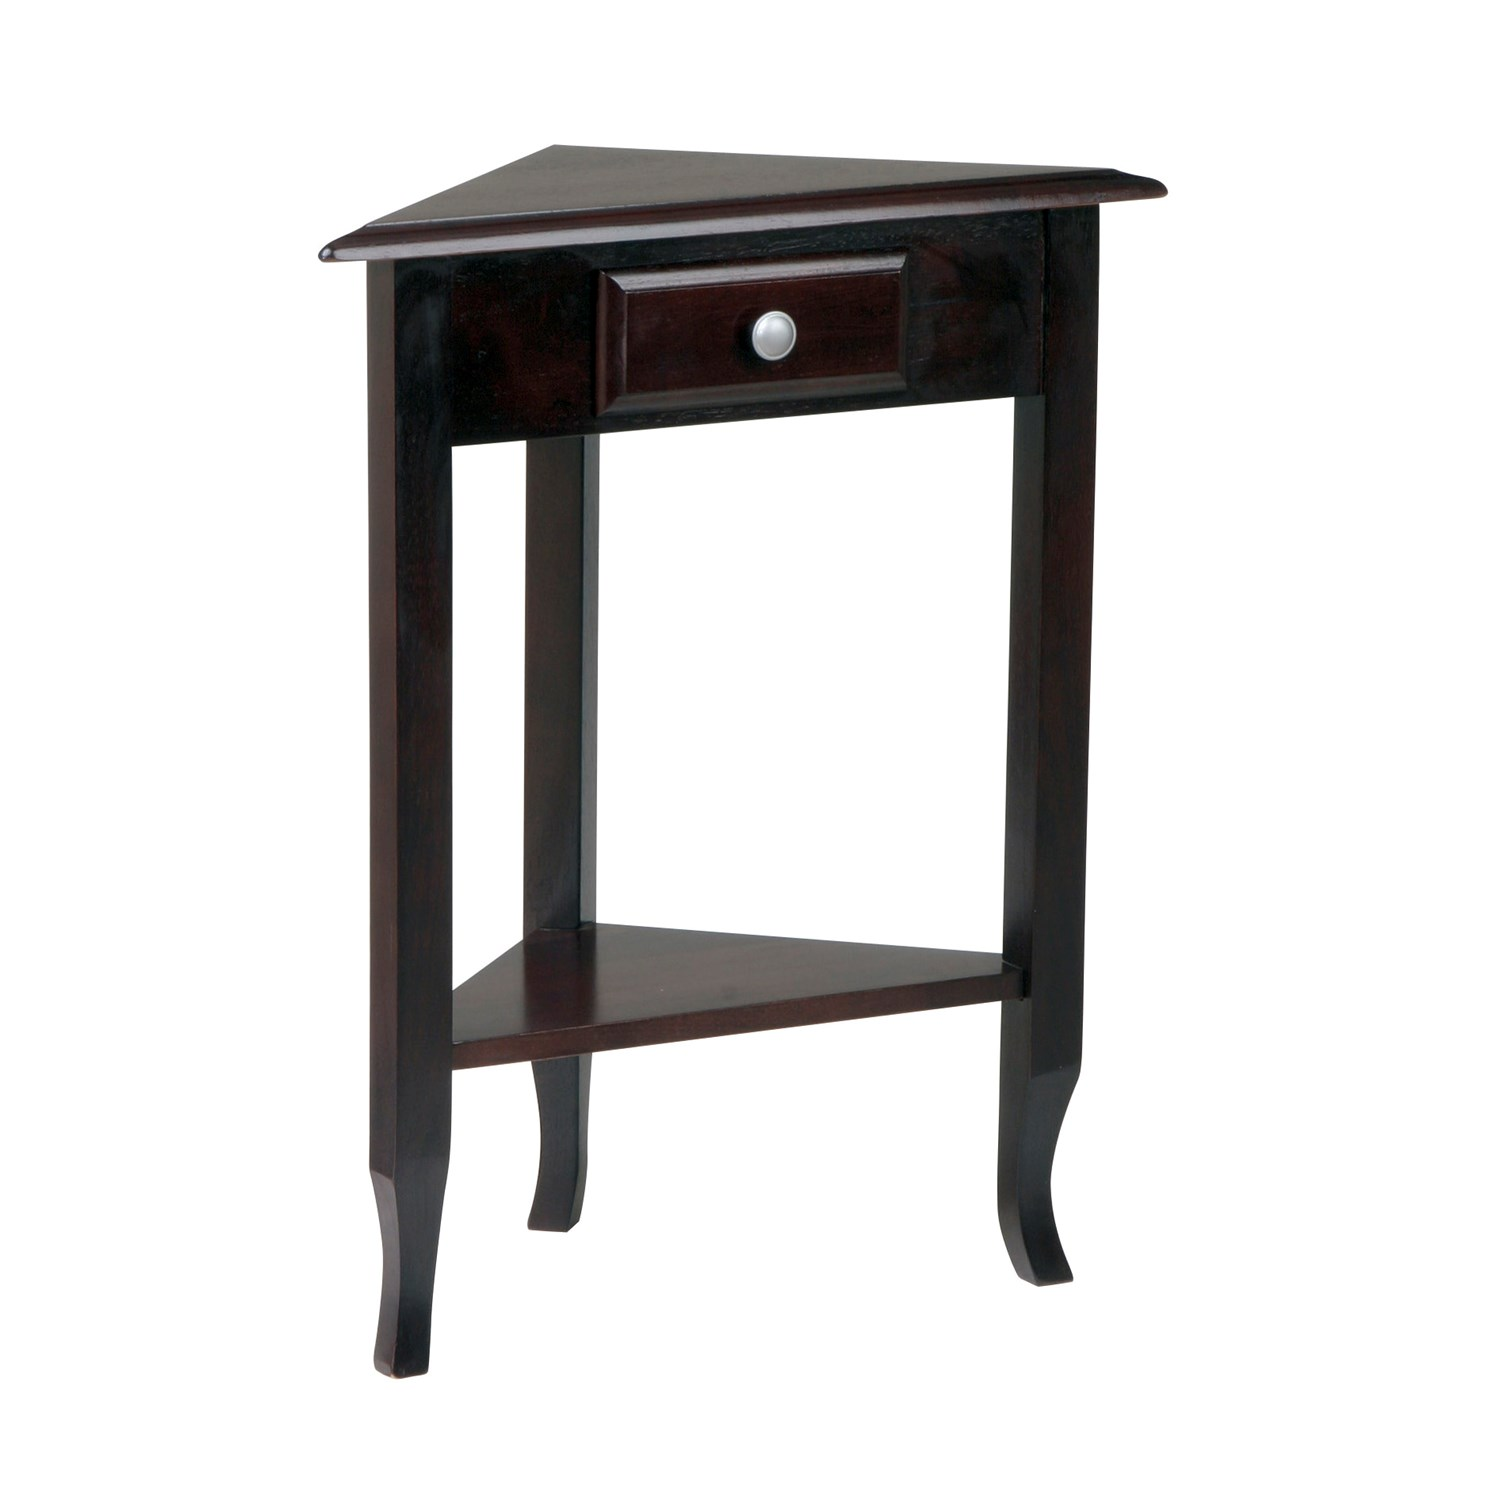 office star products merlot corner accent table with storage white kitchen bar wood pedestal end folding dining for small space side ideas living room round covers bedside tables